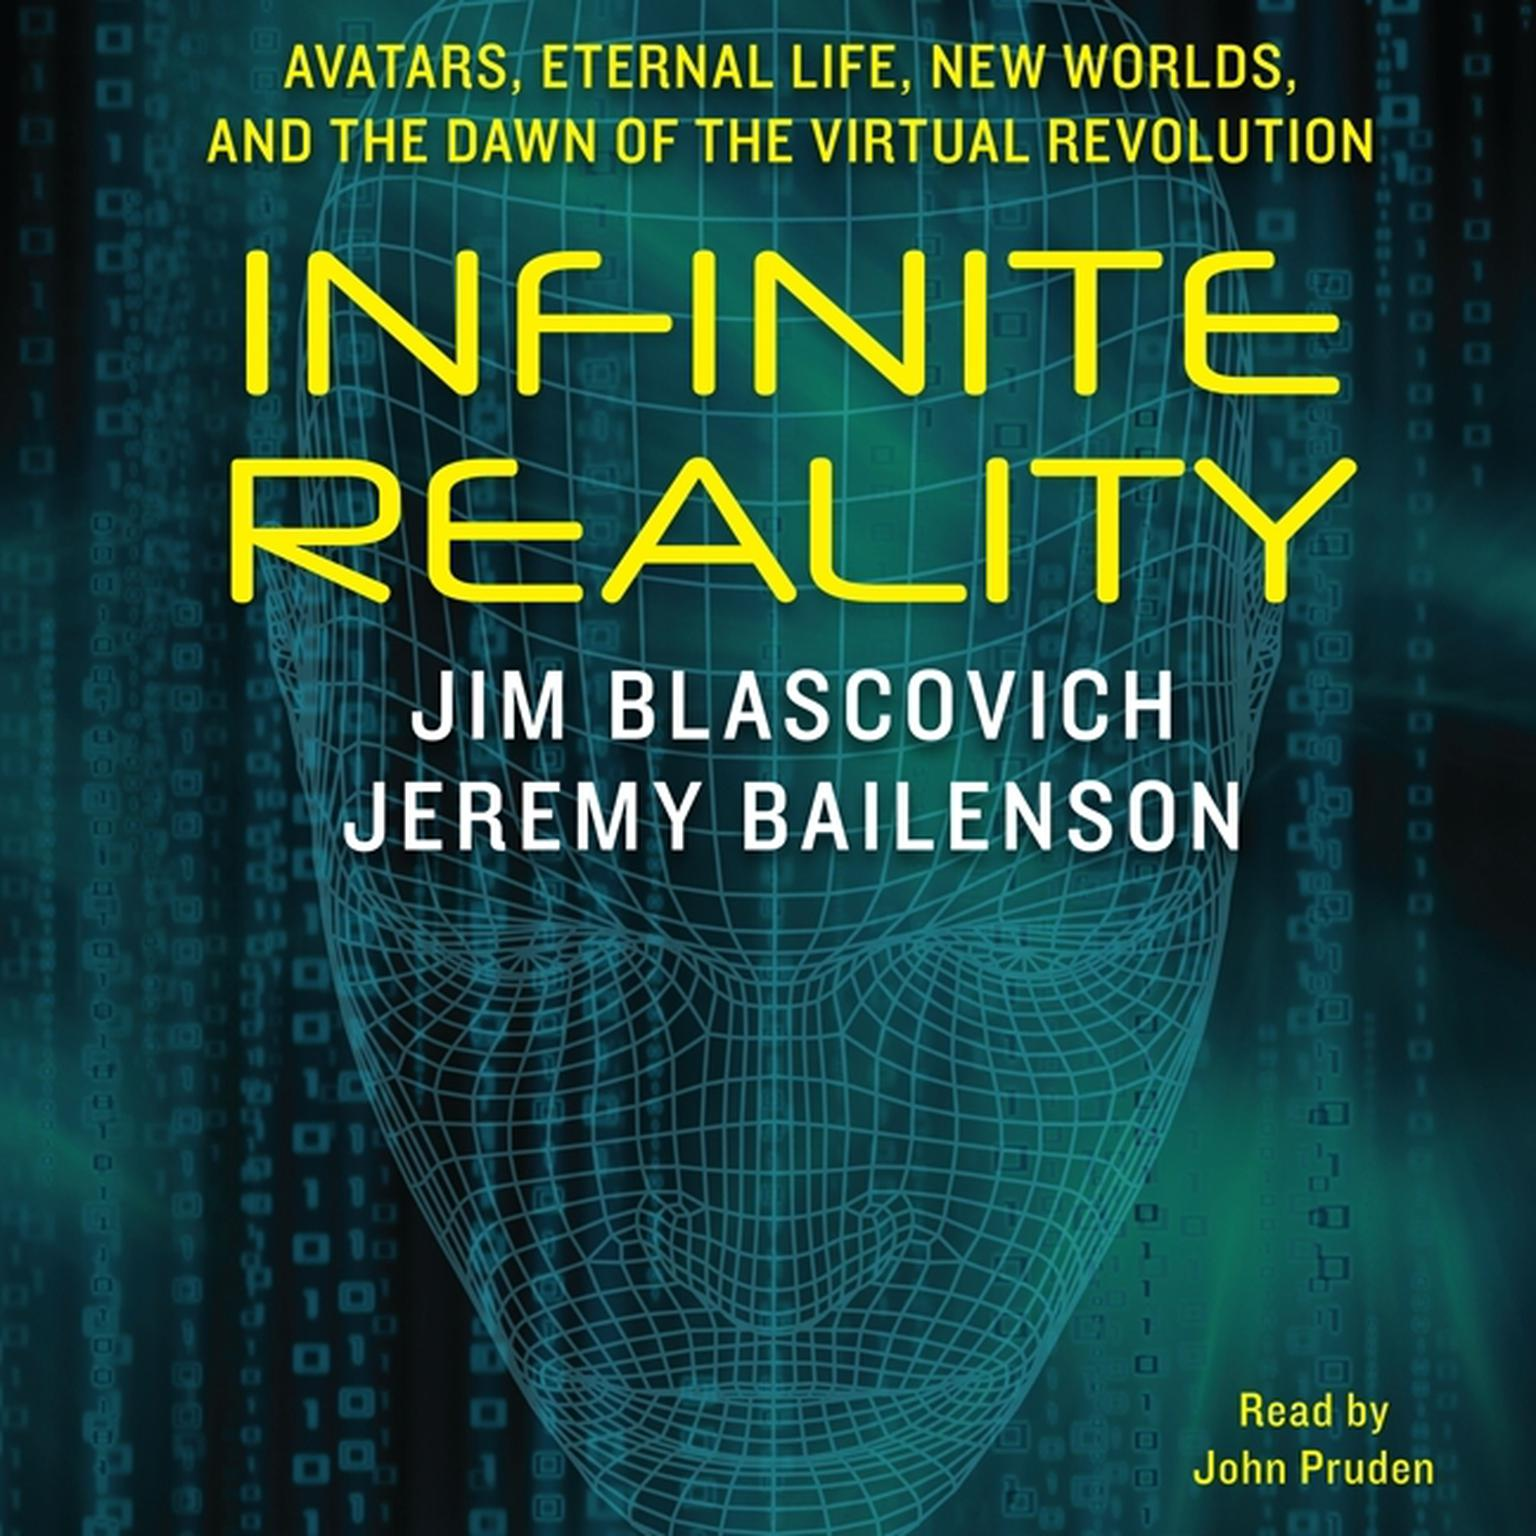 Printable Infinite Reality: Avatars, Eternal Life, New Worlds, and the Dawn of the Virtual Revolution Audiobook Cover Art